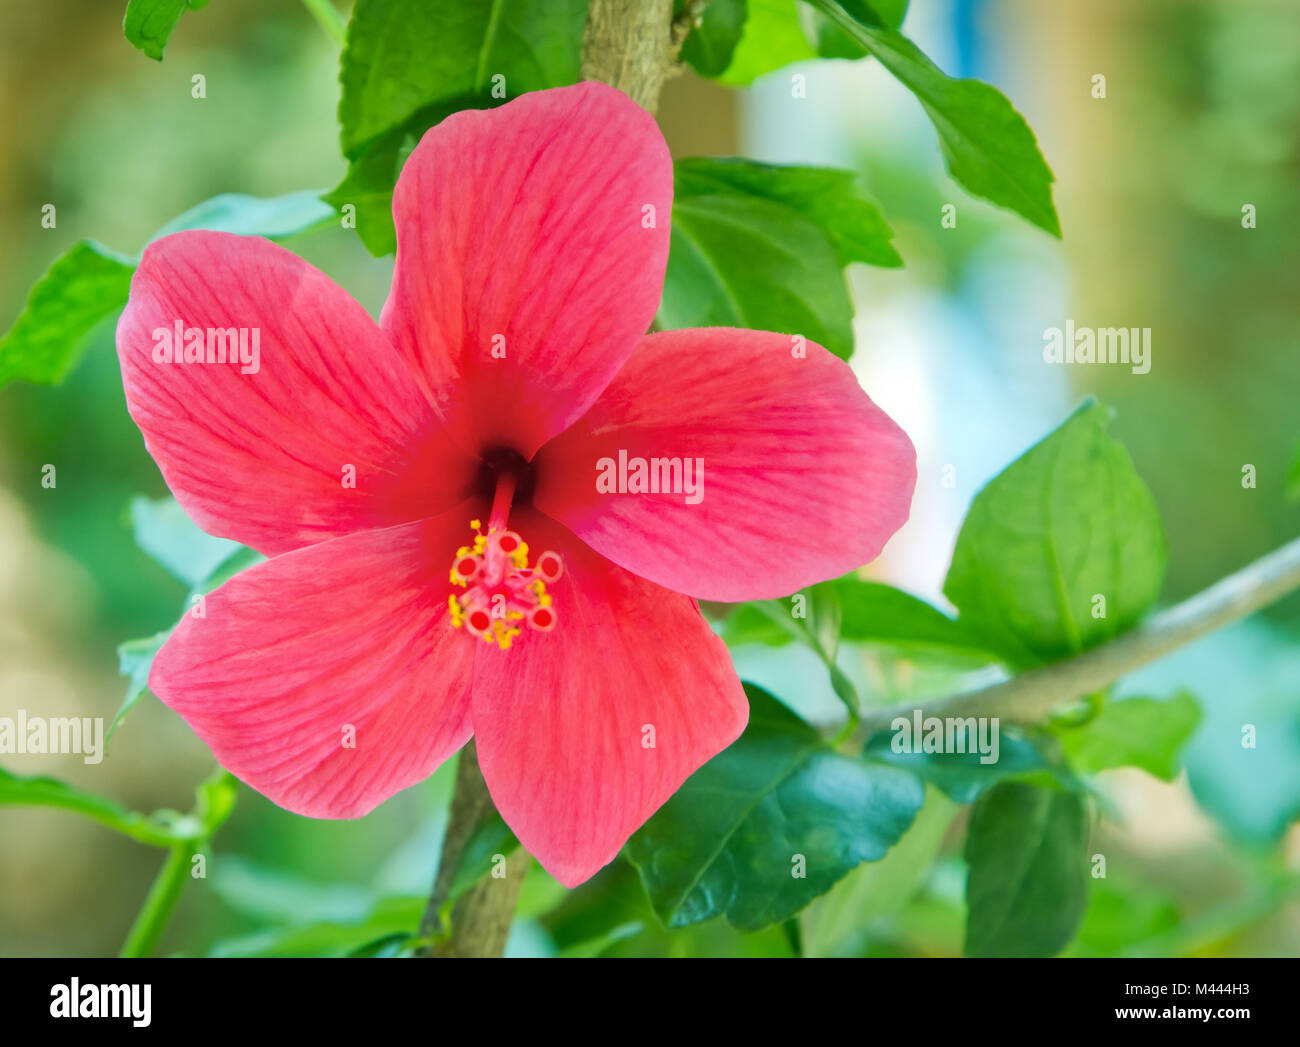 Different parts of hibiscus flower gallery flower wallpaper hd hibiscus flower with labelled parts images flower wallpaper hd different parts of hibiscus flower images flower izmirmasajfo Choice Image